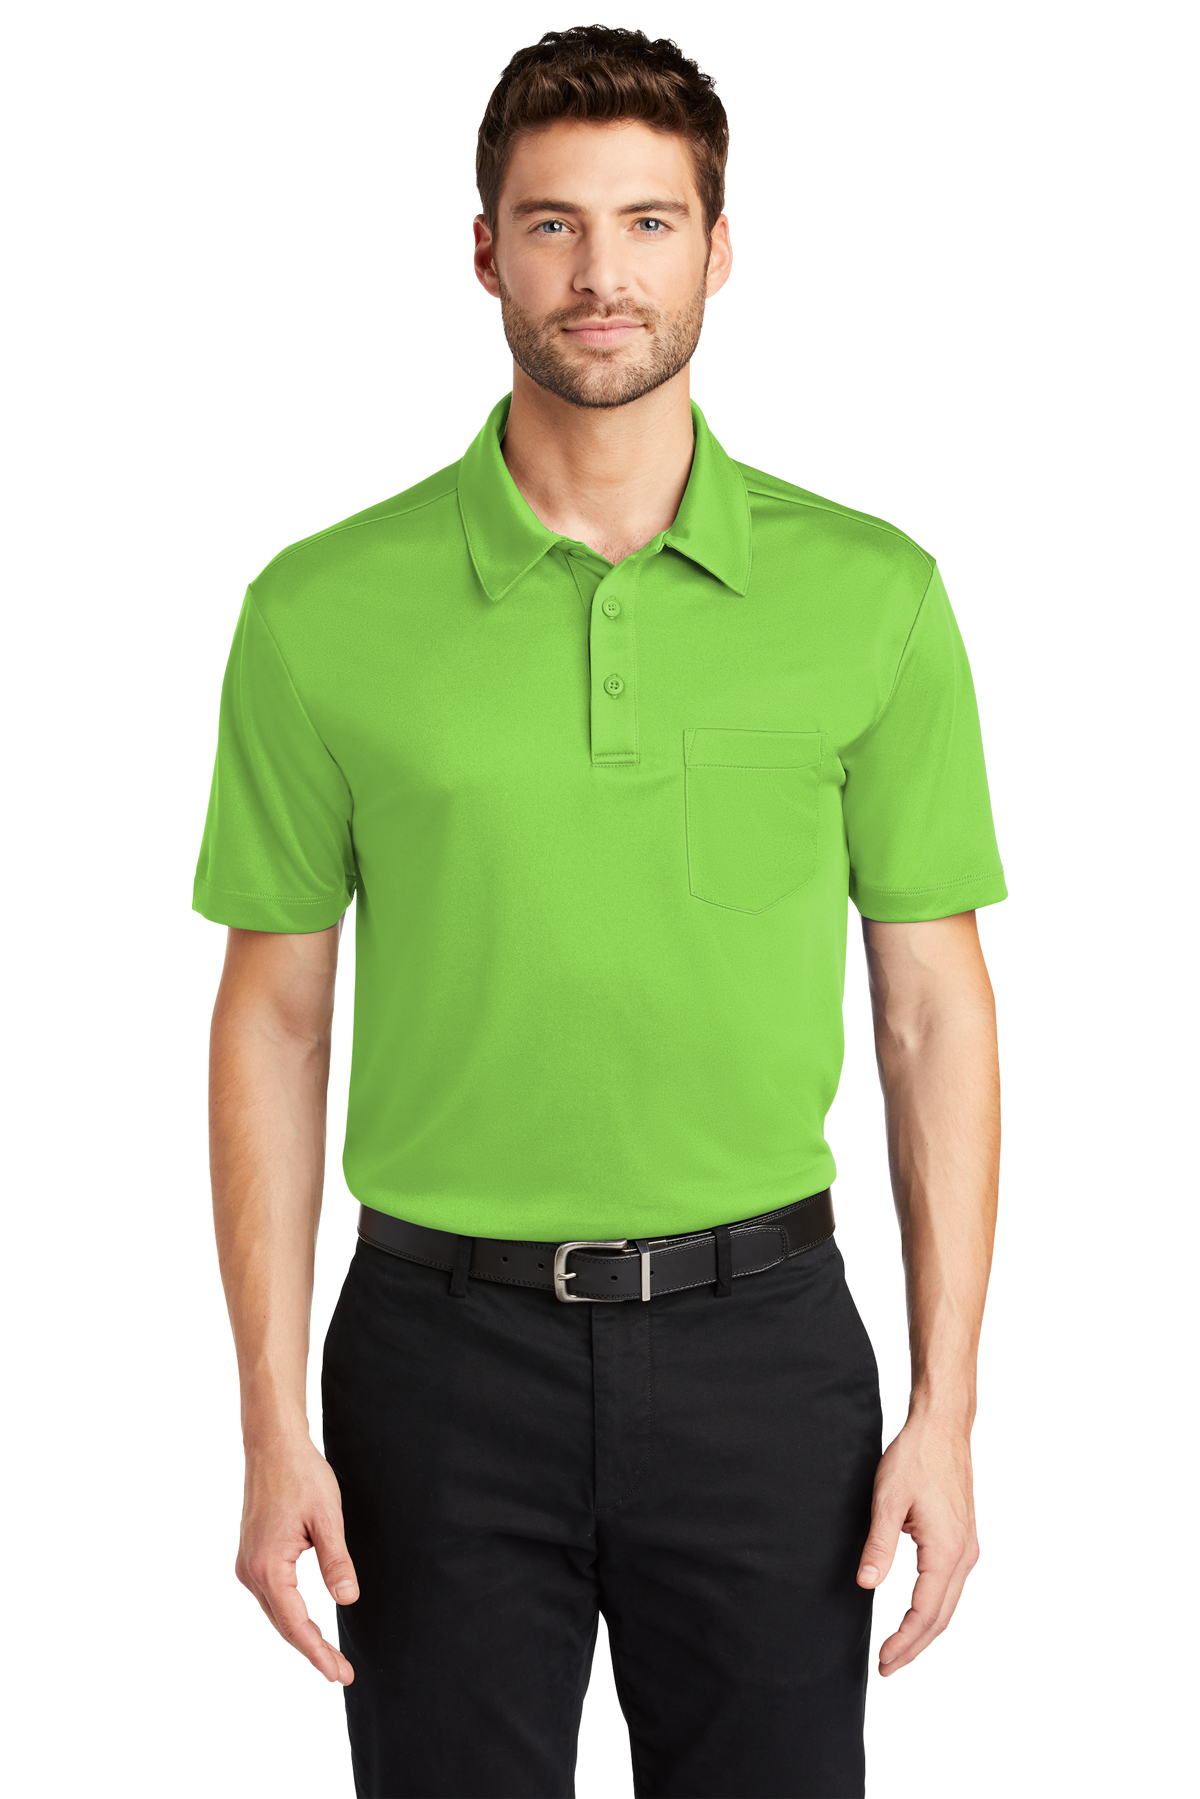 Port Authority Silk Touch™ Performance Pocket Polo | Product | Port ...